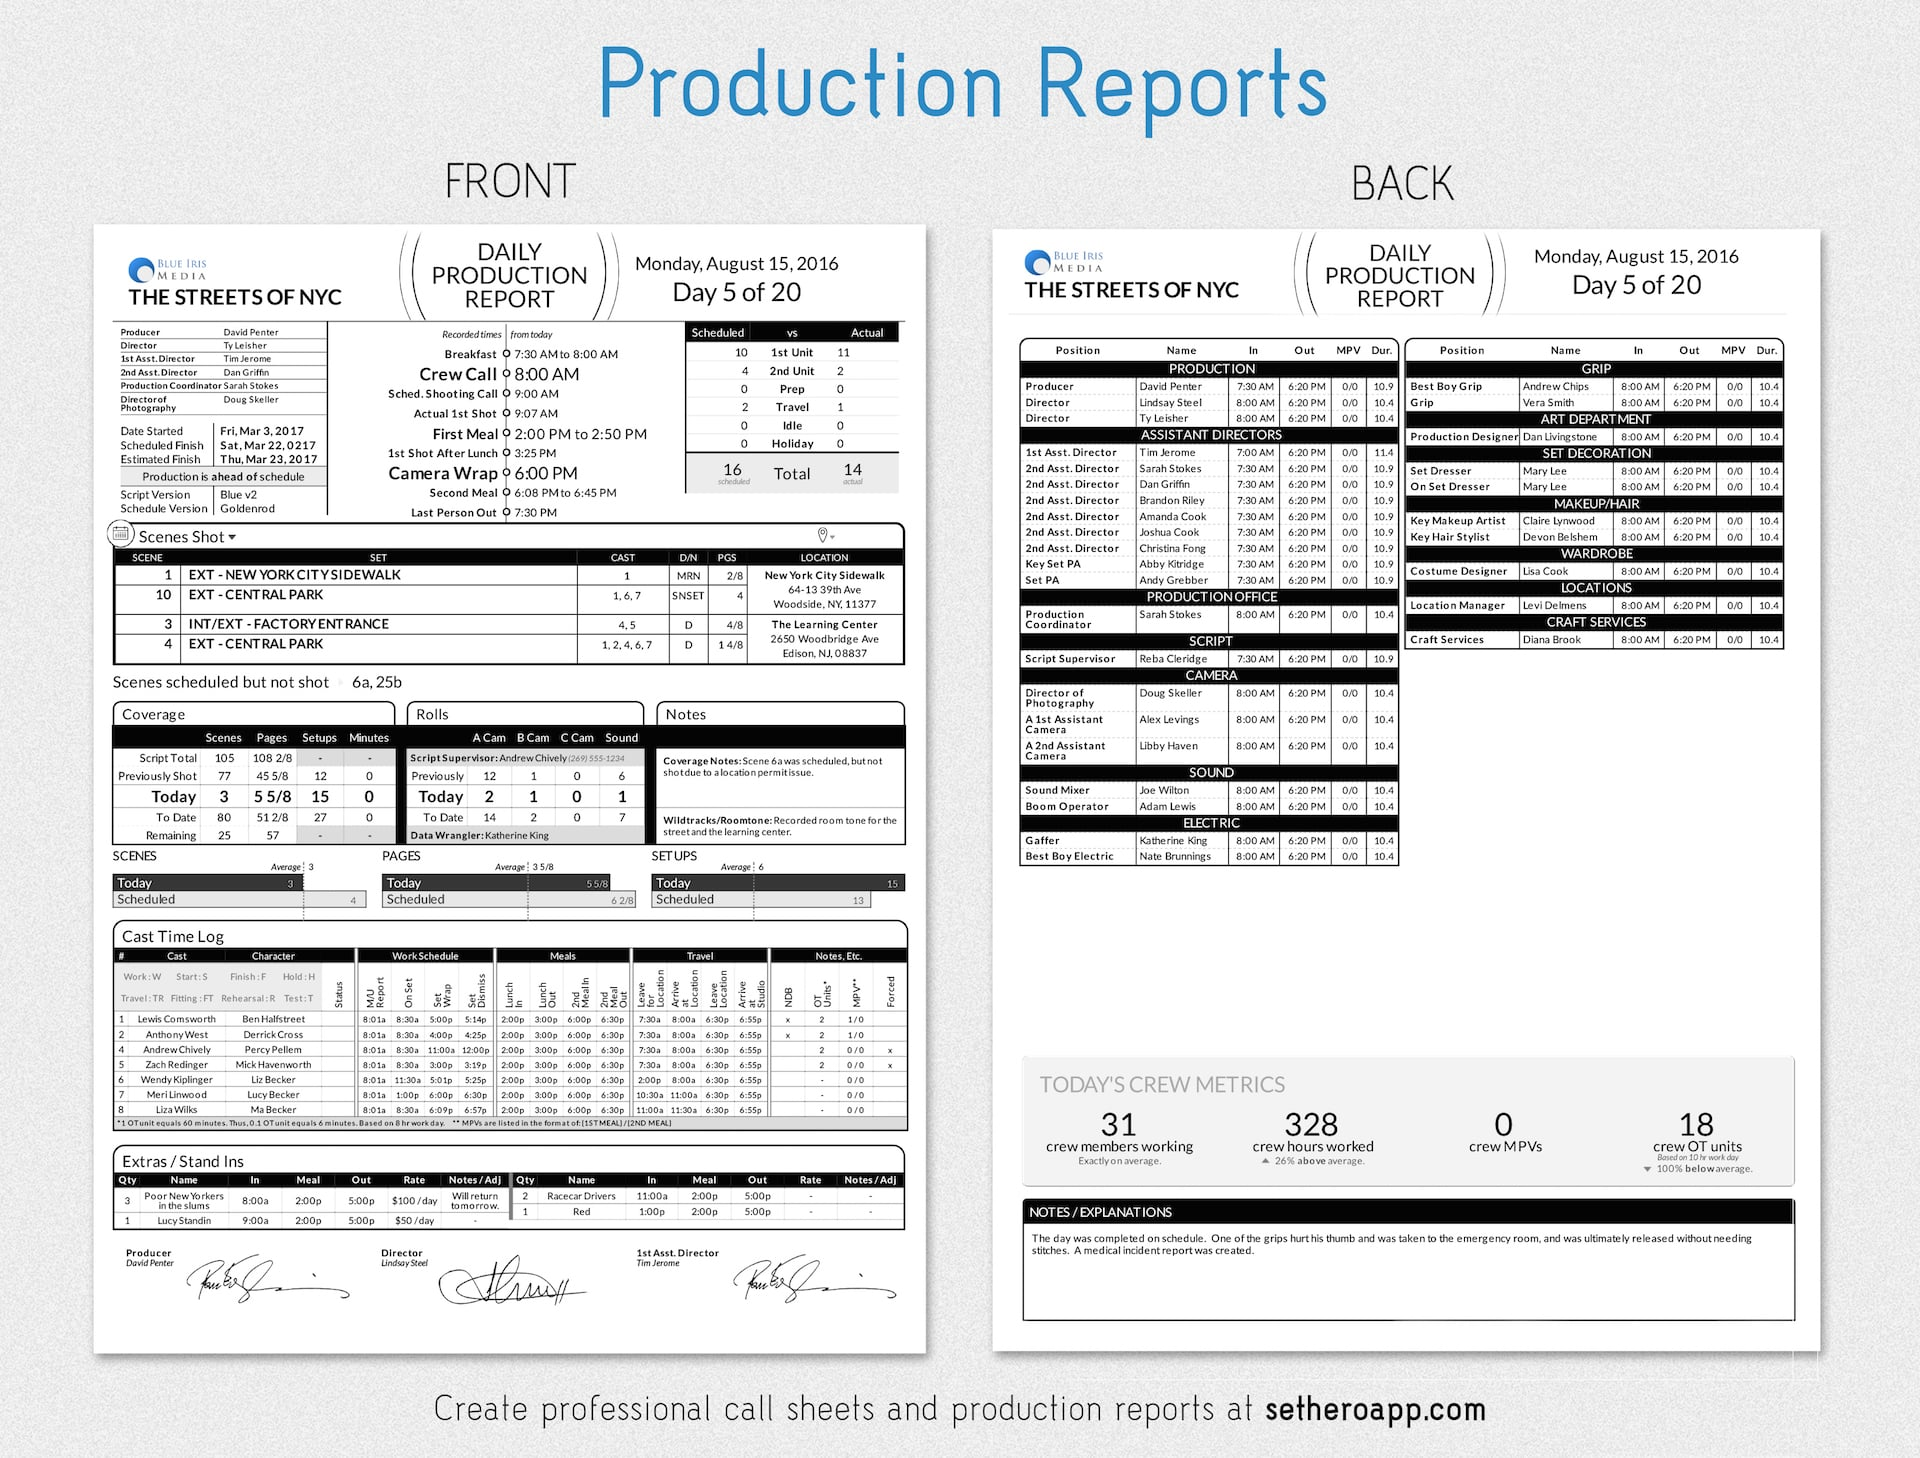 Daily production report template medium sethero daily production report template medium maxwellsz